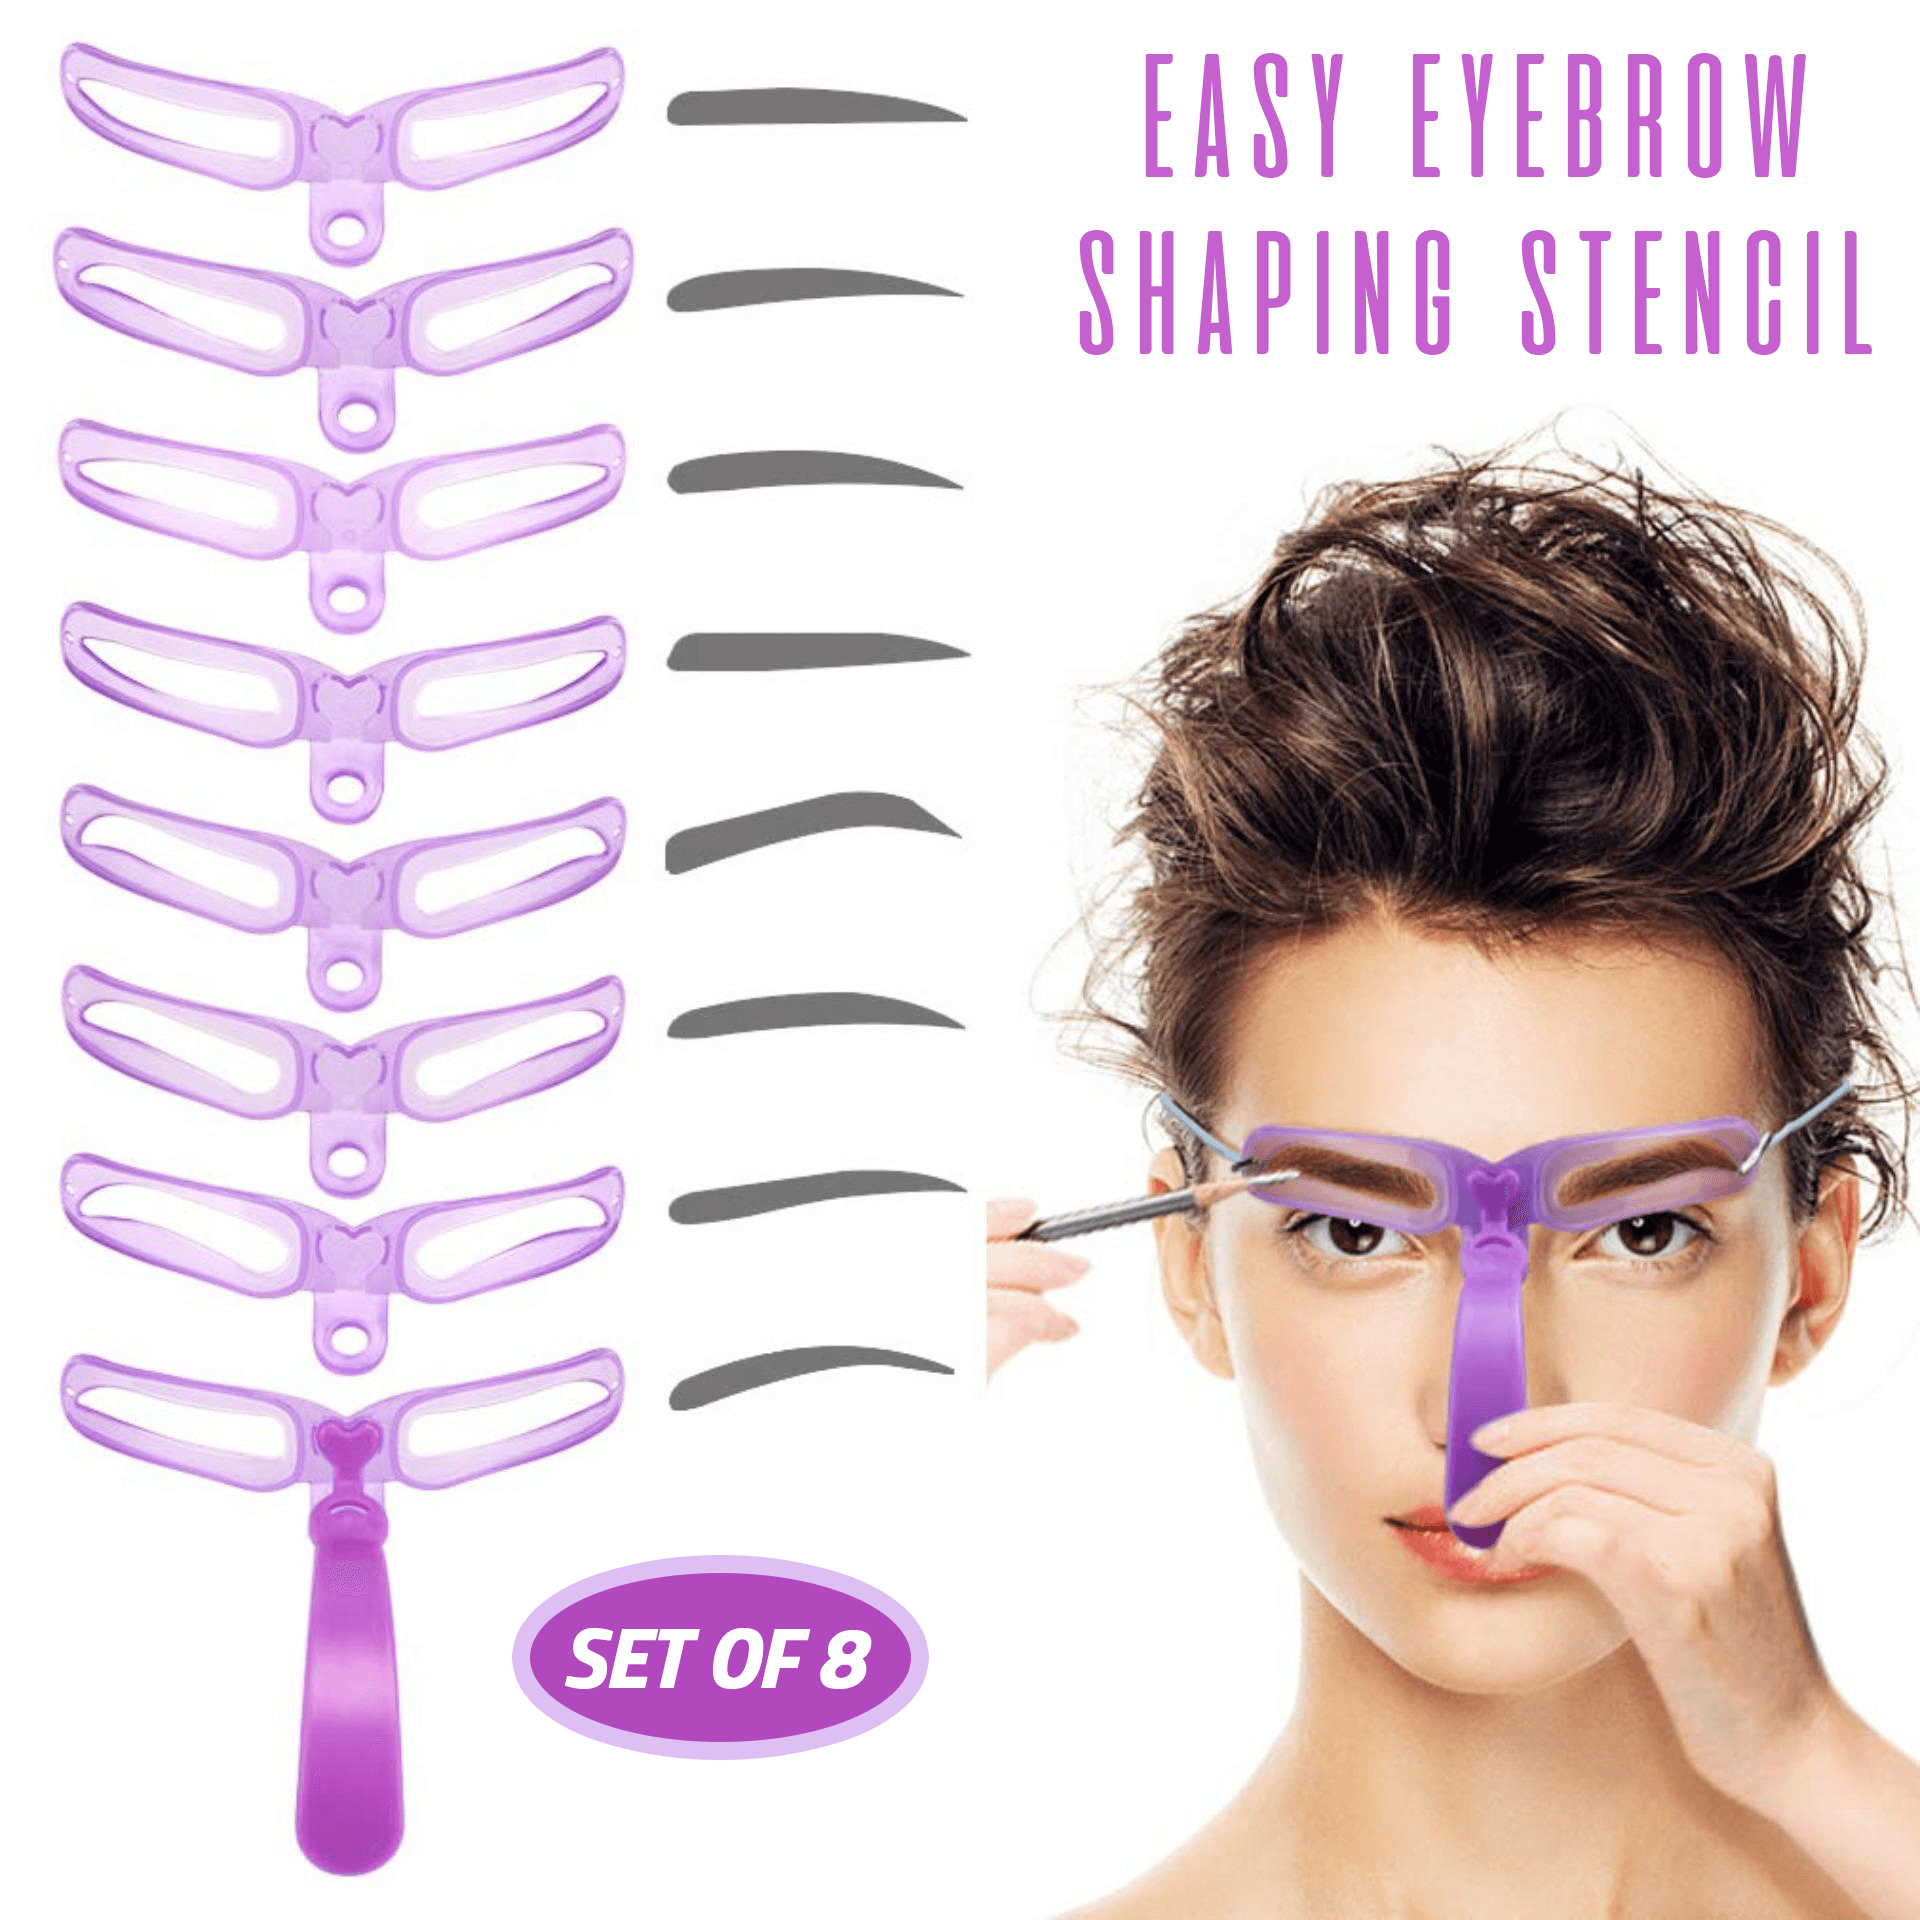 Easy Eyebrow Shaping Stencil (Set of 8)